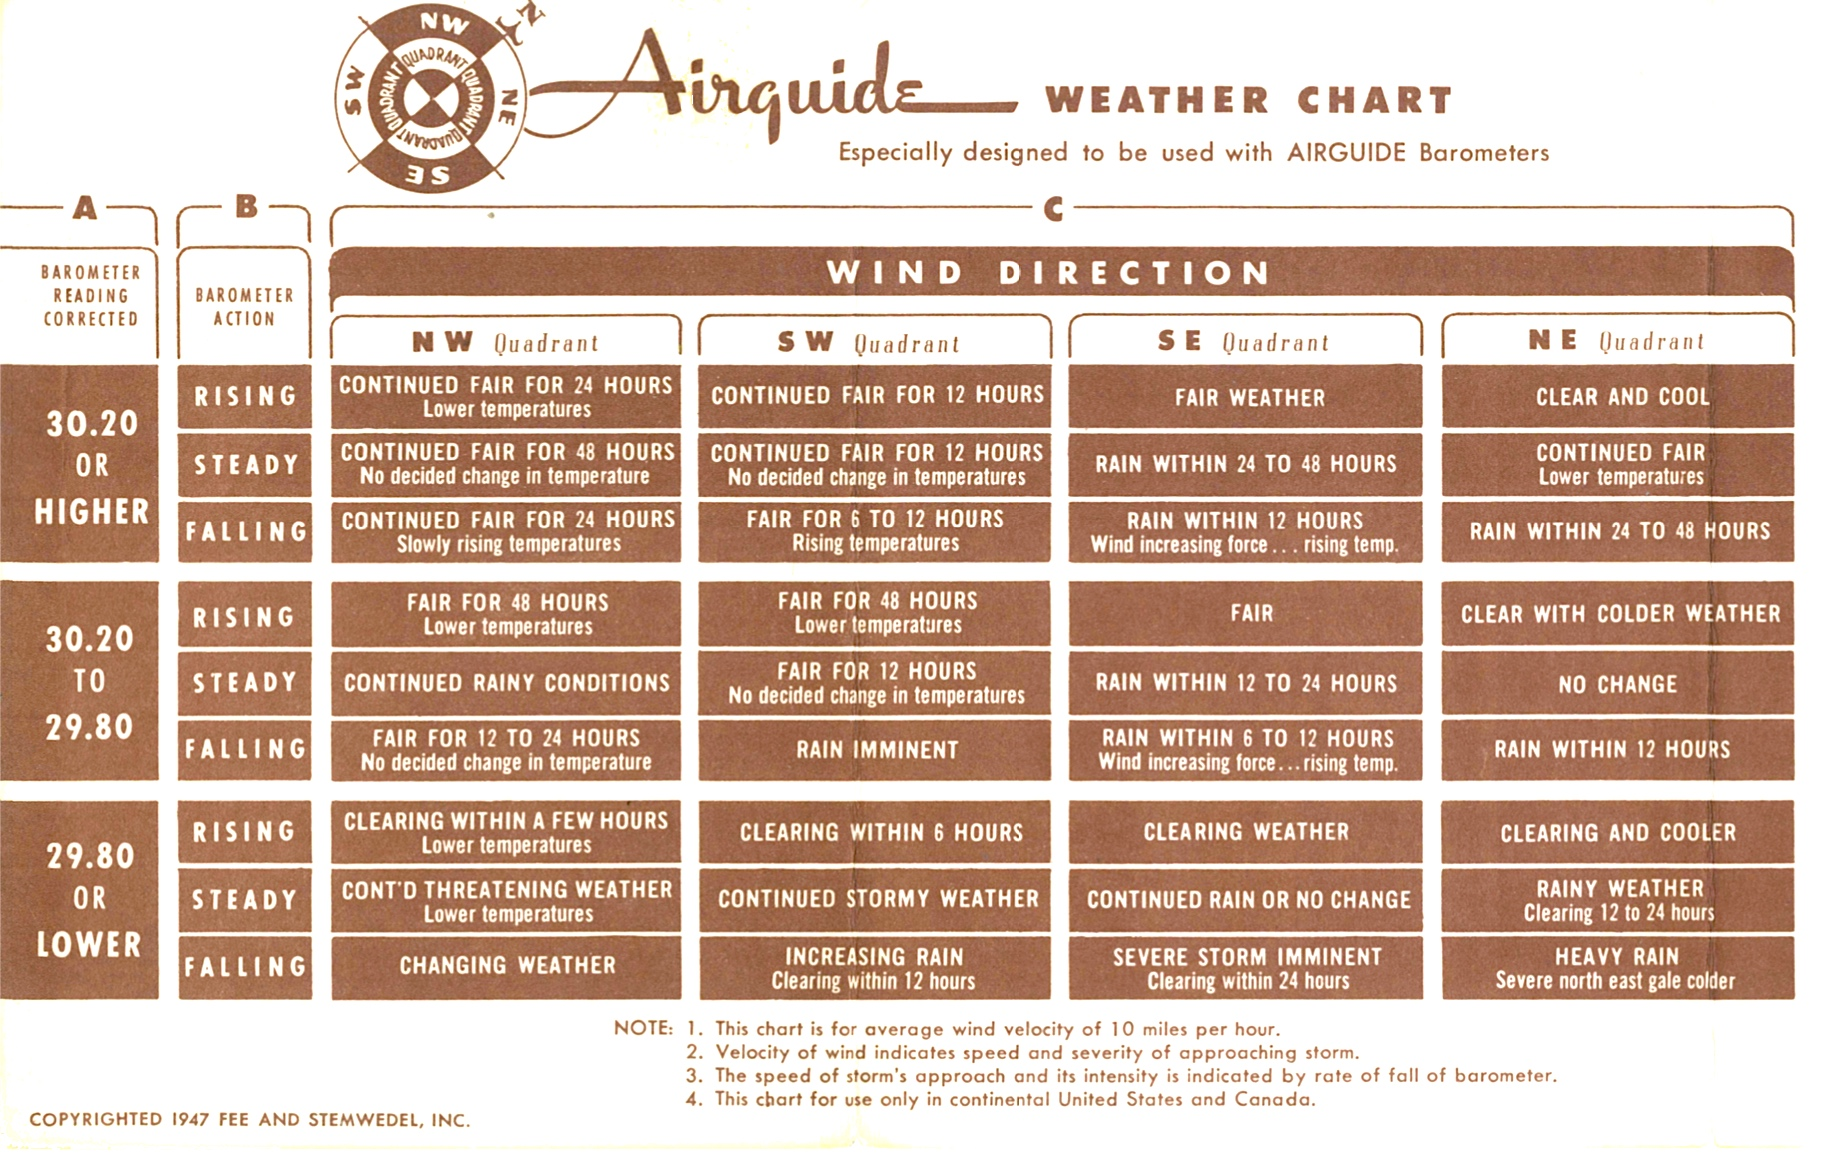 Airguide Weather chart